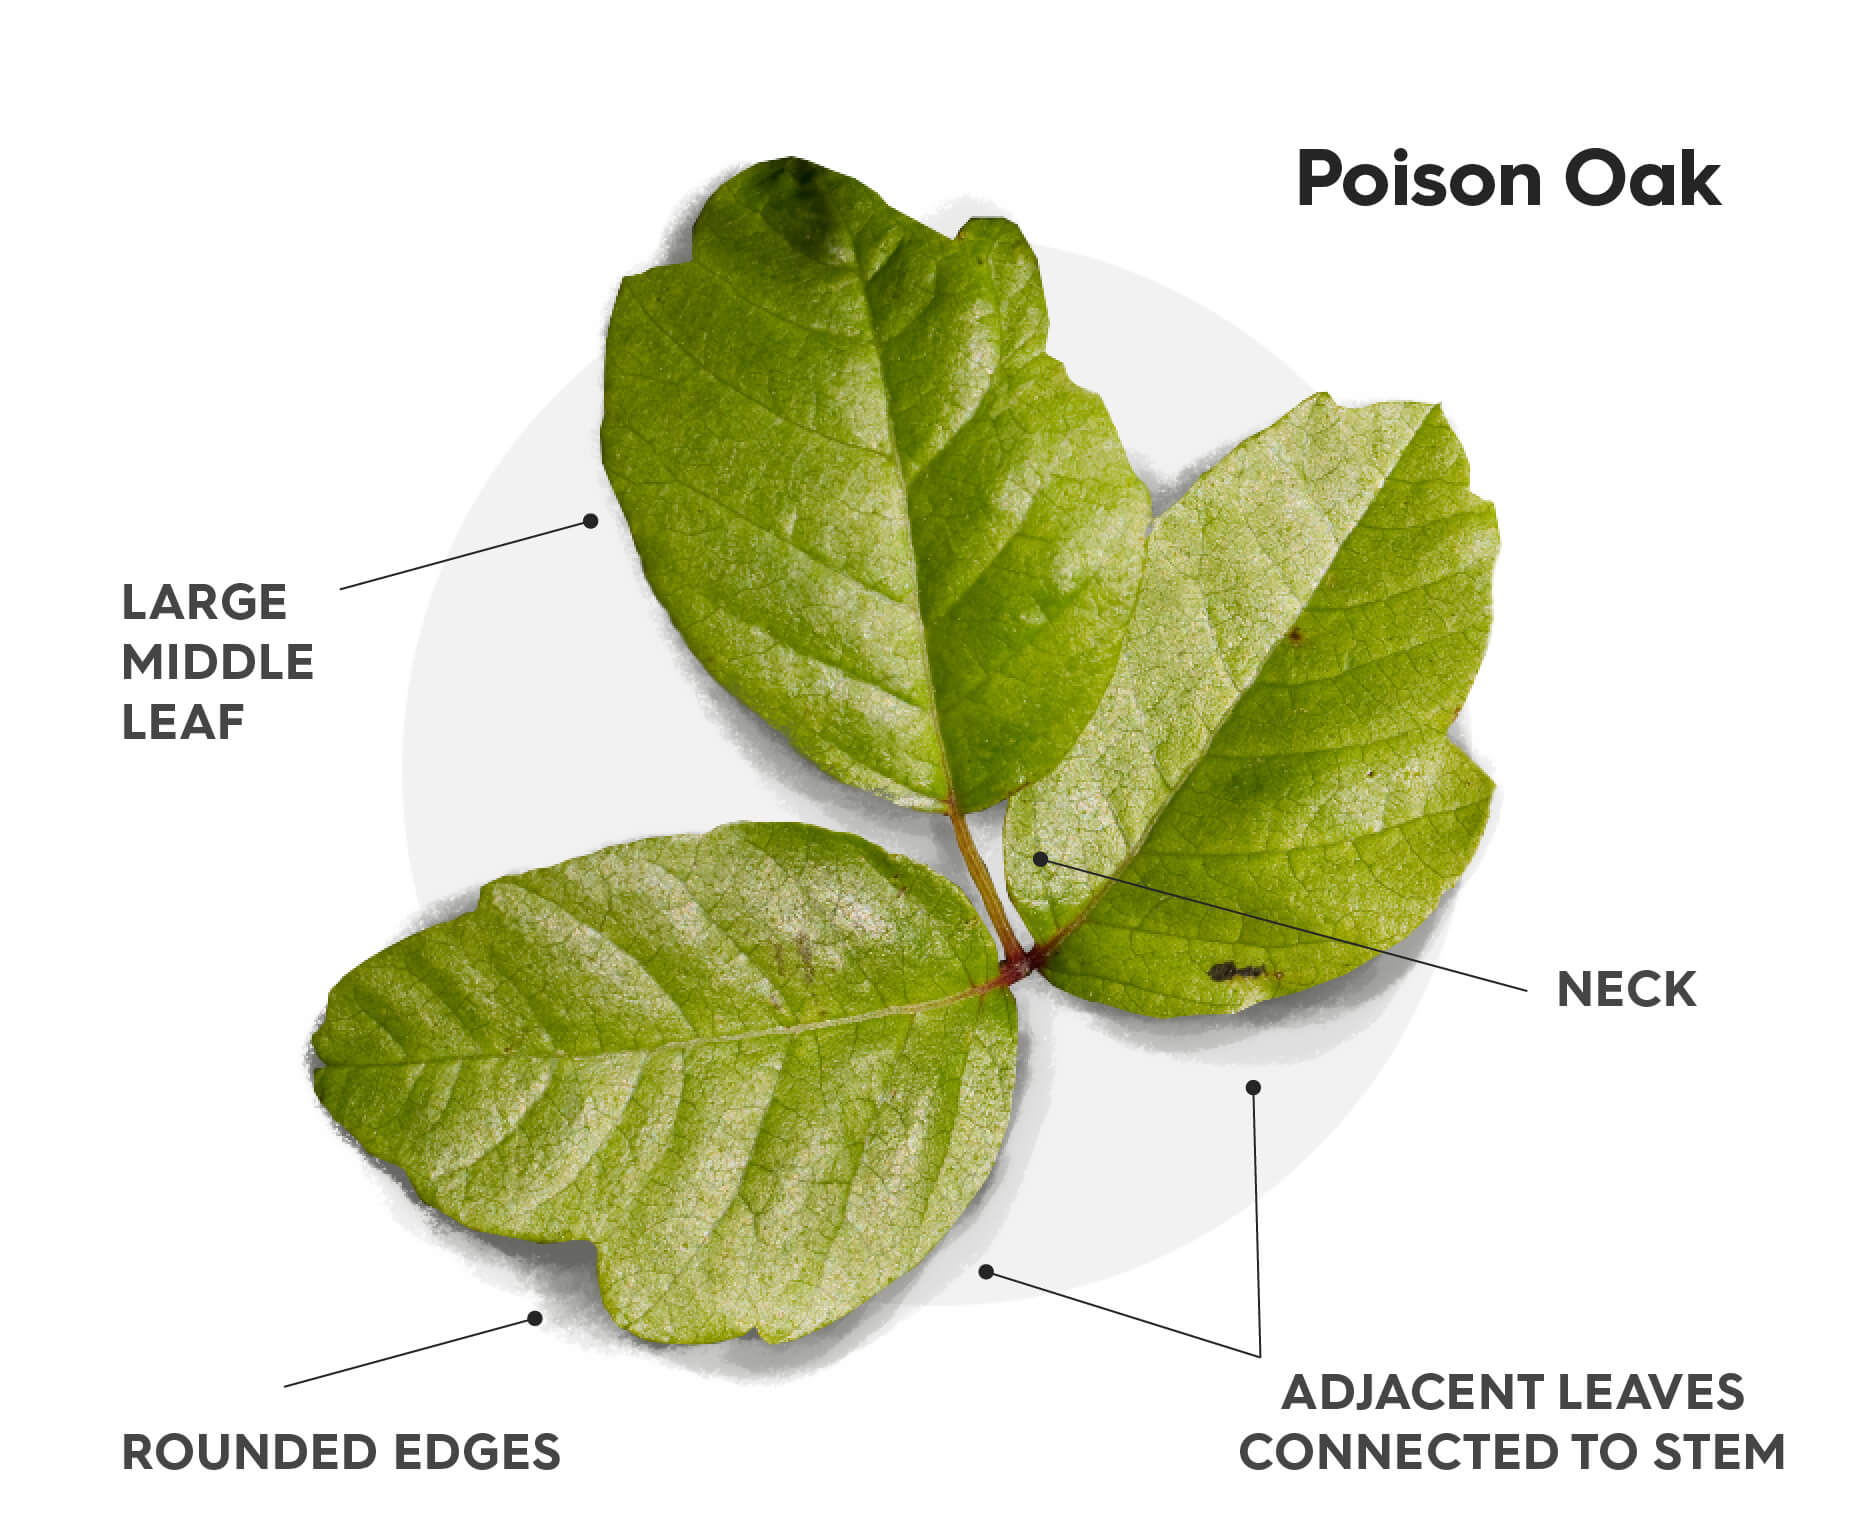 """A diagram showing how to identify poison oak. These are the hallmarks of poison oak; Three leaves where the left and right are adjacent from each other connected to the main stem where as the middle, larger leaf, is connected to the main stem by a short """"neck"""". The leaves of poison oak resemble oak tree leaves with similar rounded edges."""